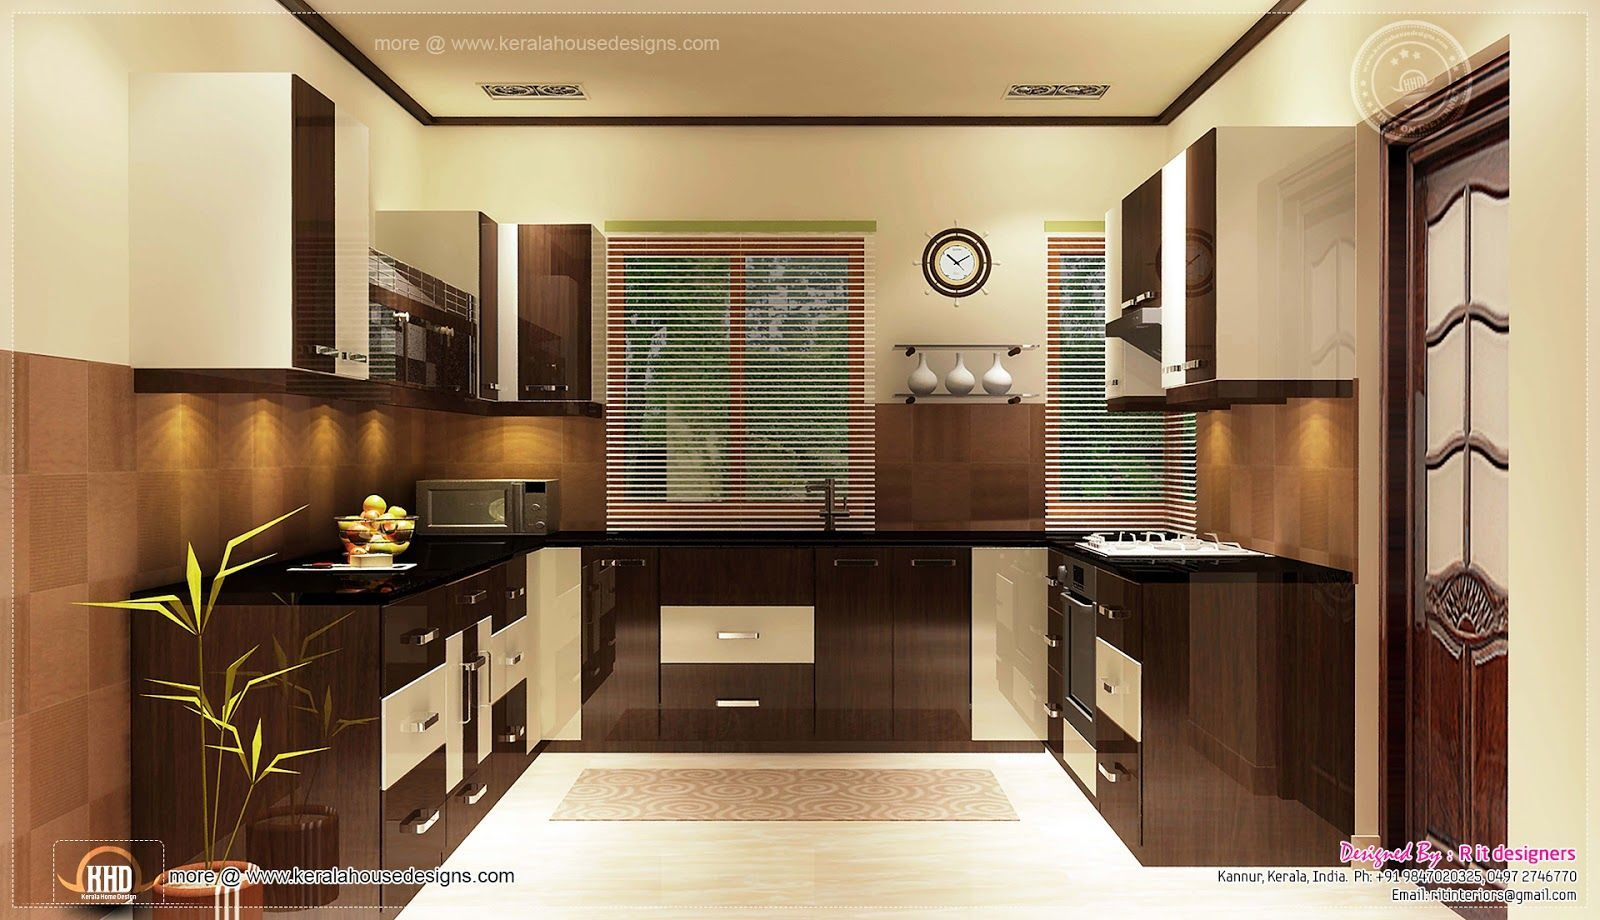 Bedroom Design For Middle Class Family Bedroom Indian Bathroom Interior Design Bathroom Interior Design Simple House Interior Design